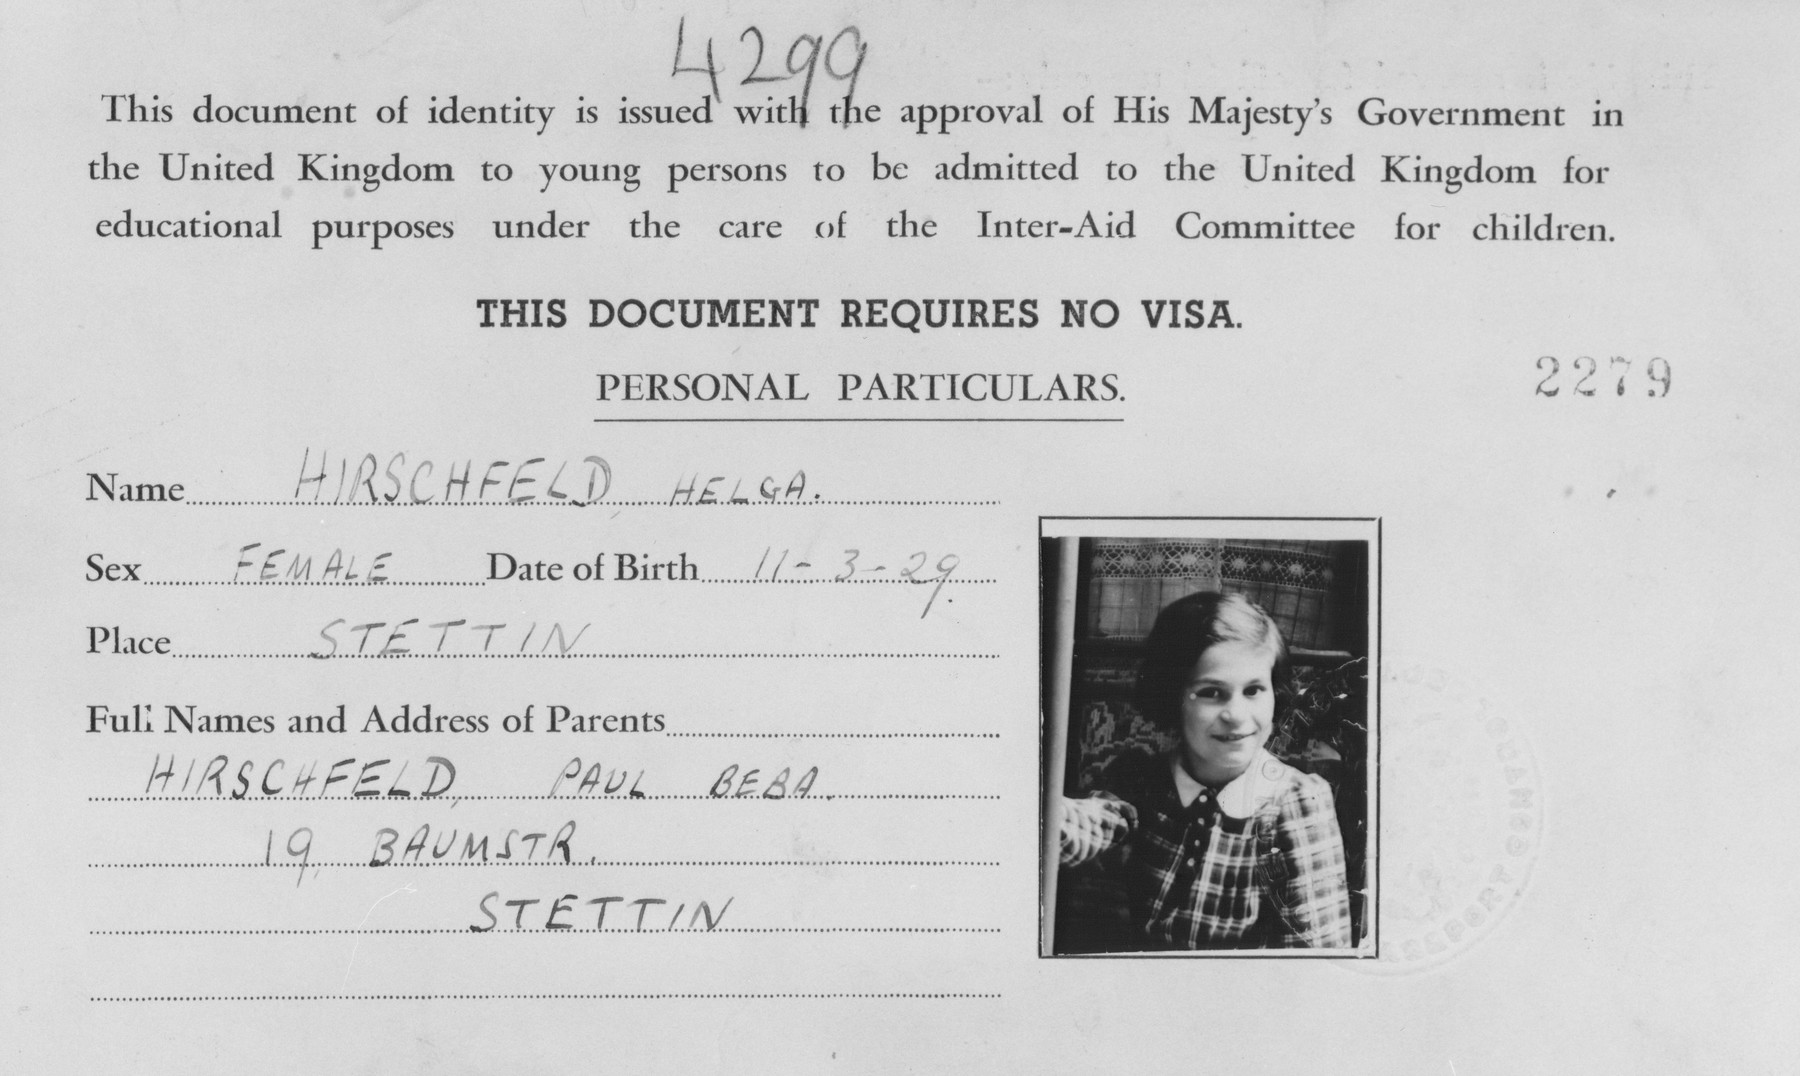 Document, in lieu of a visa, allowing Helga Hirschfeld to be admitted to the United Kingdom under the care of the Inter-Aid Committee for children.